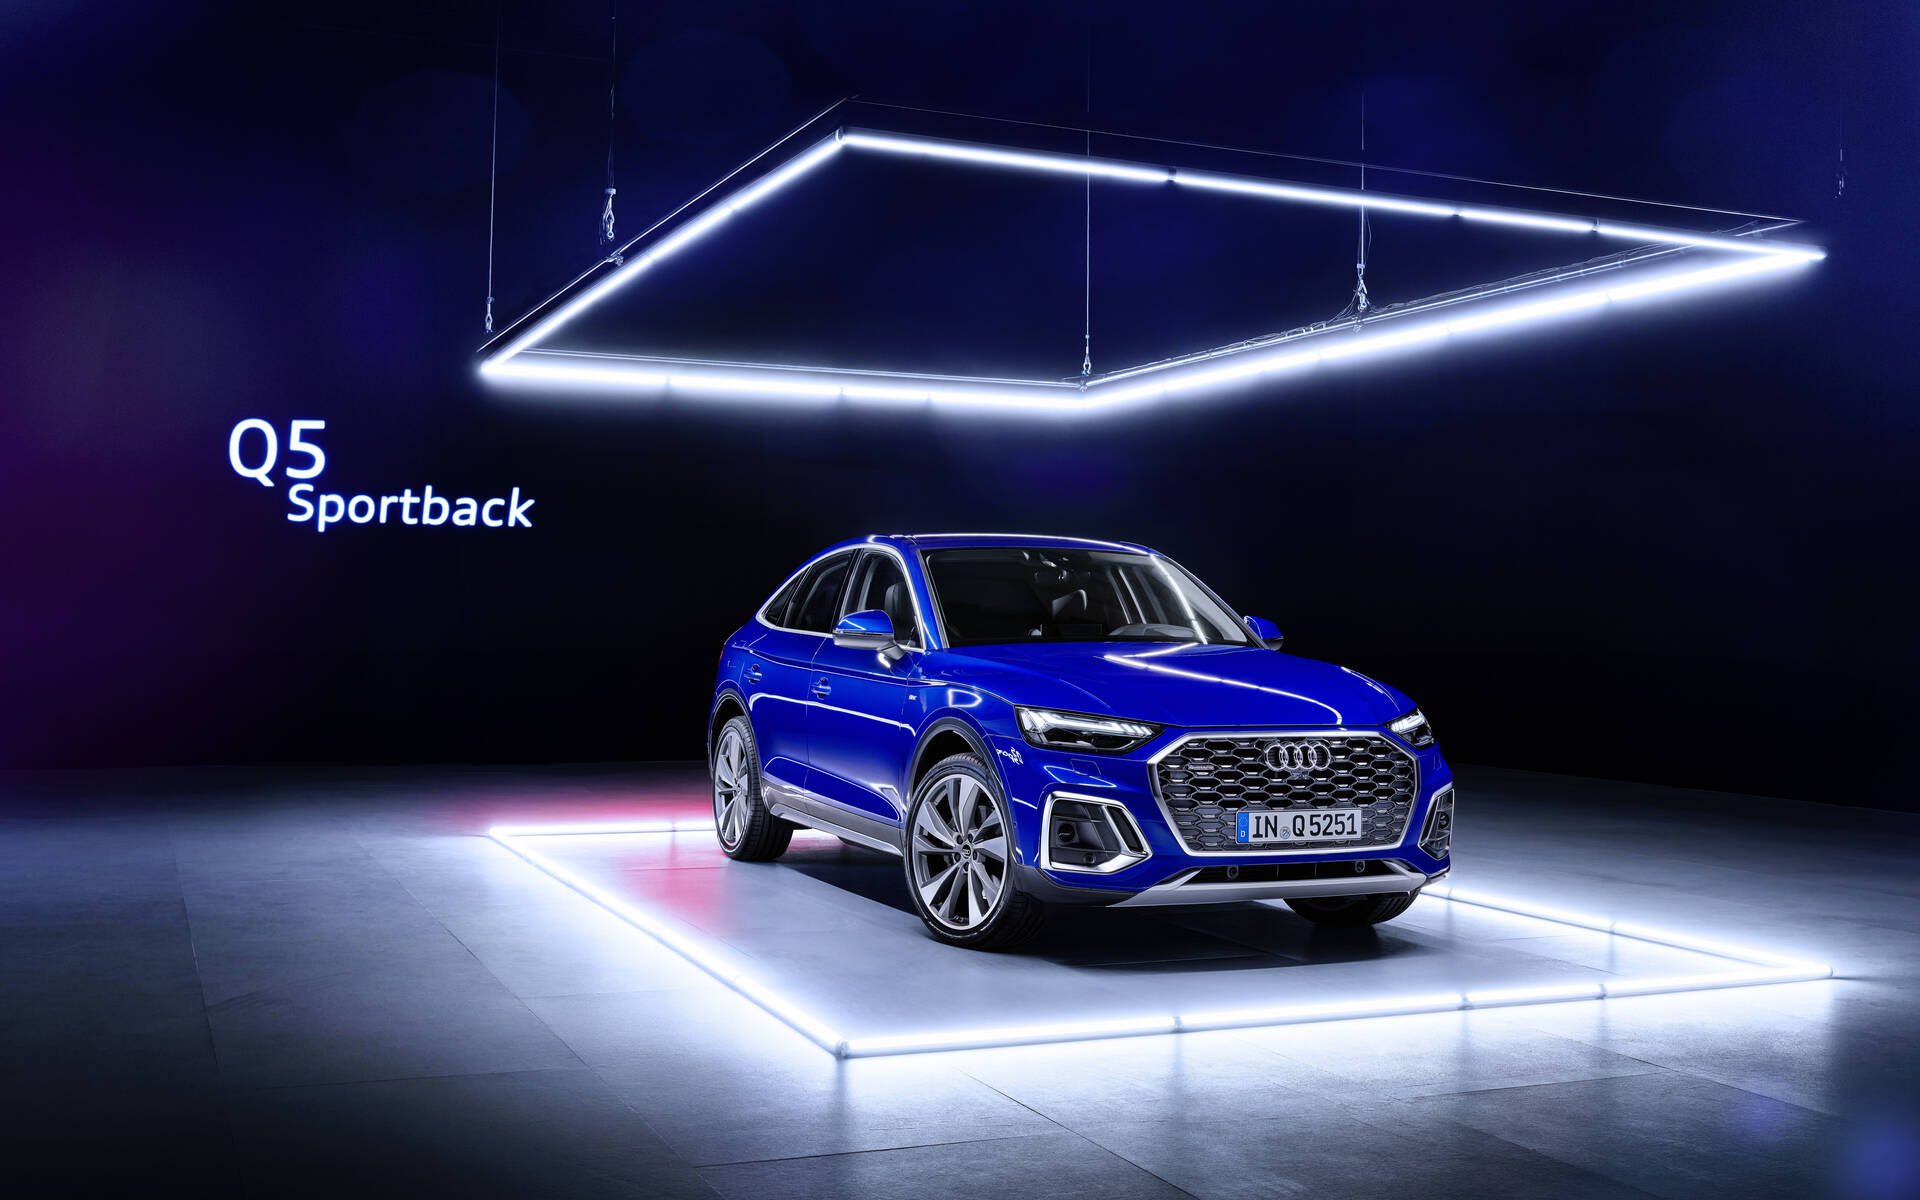 New Audi Q5 Sportback to Land in Canada in 2021 - The Car ...